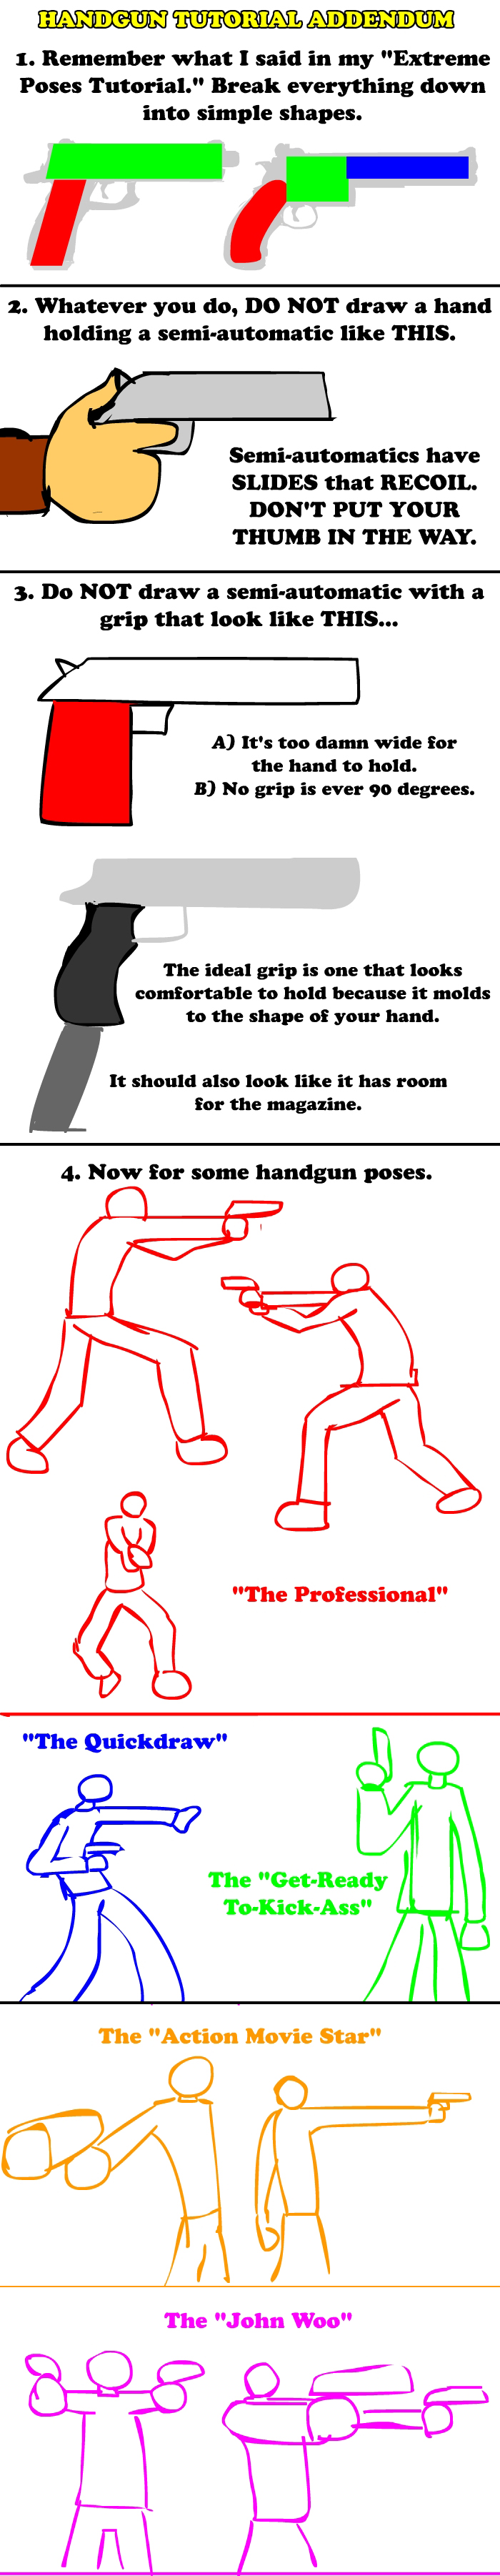 HANDGUNS TUTORIAL ADDENDUM by PhiTuS